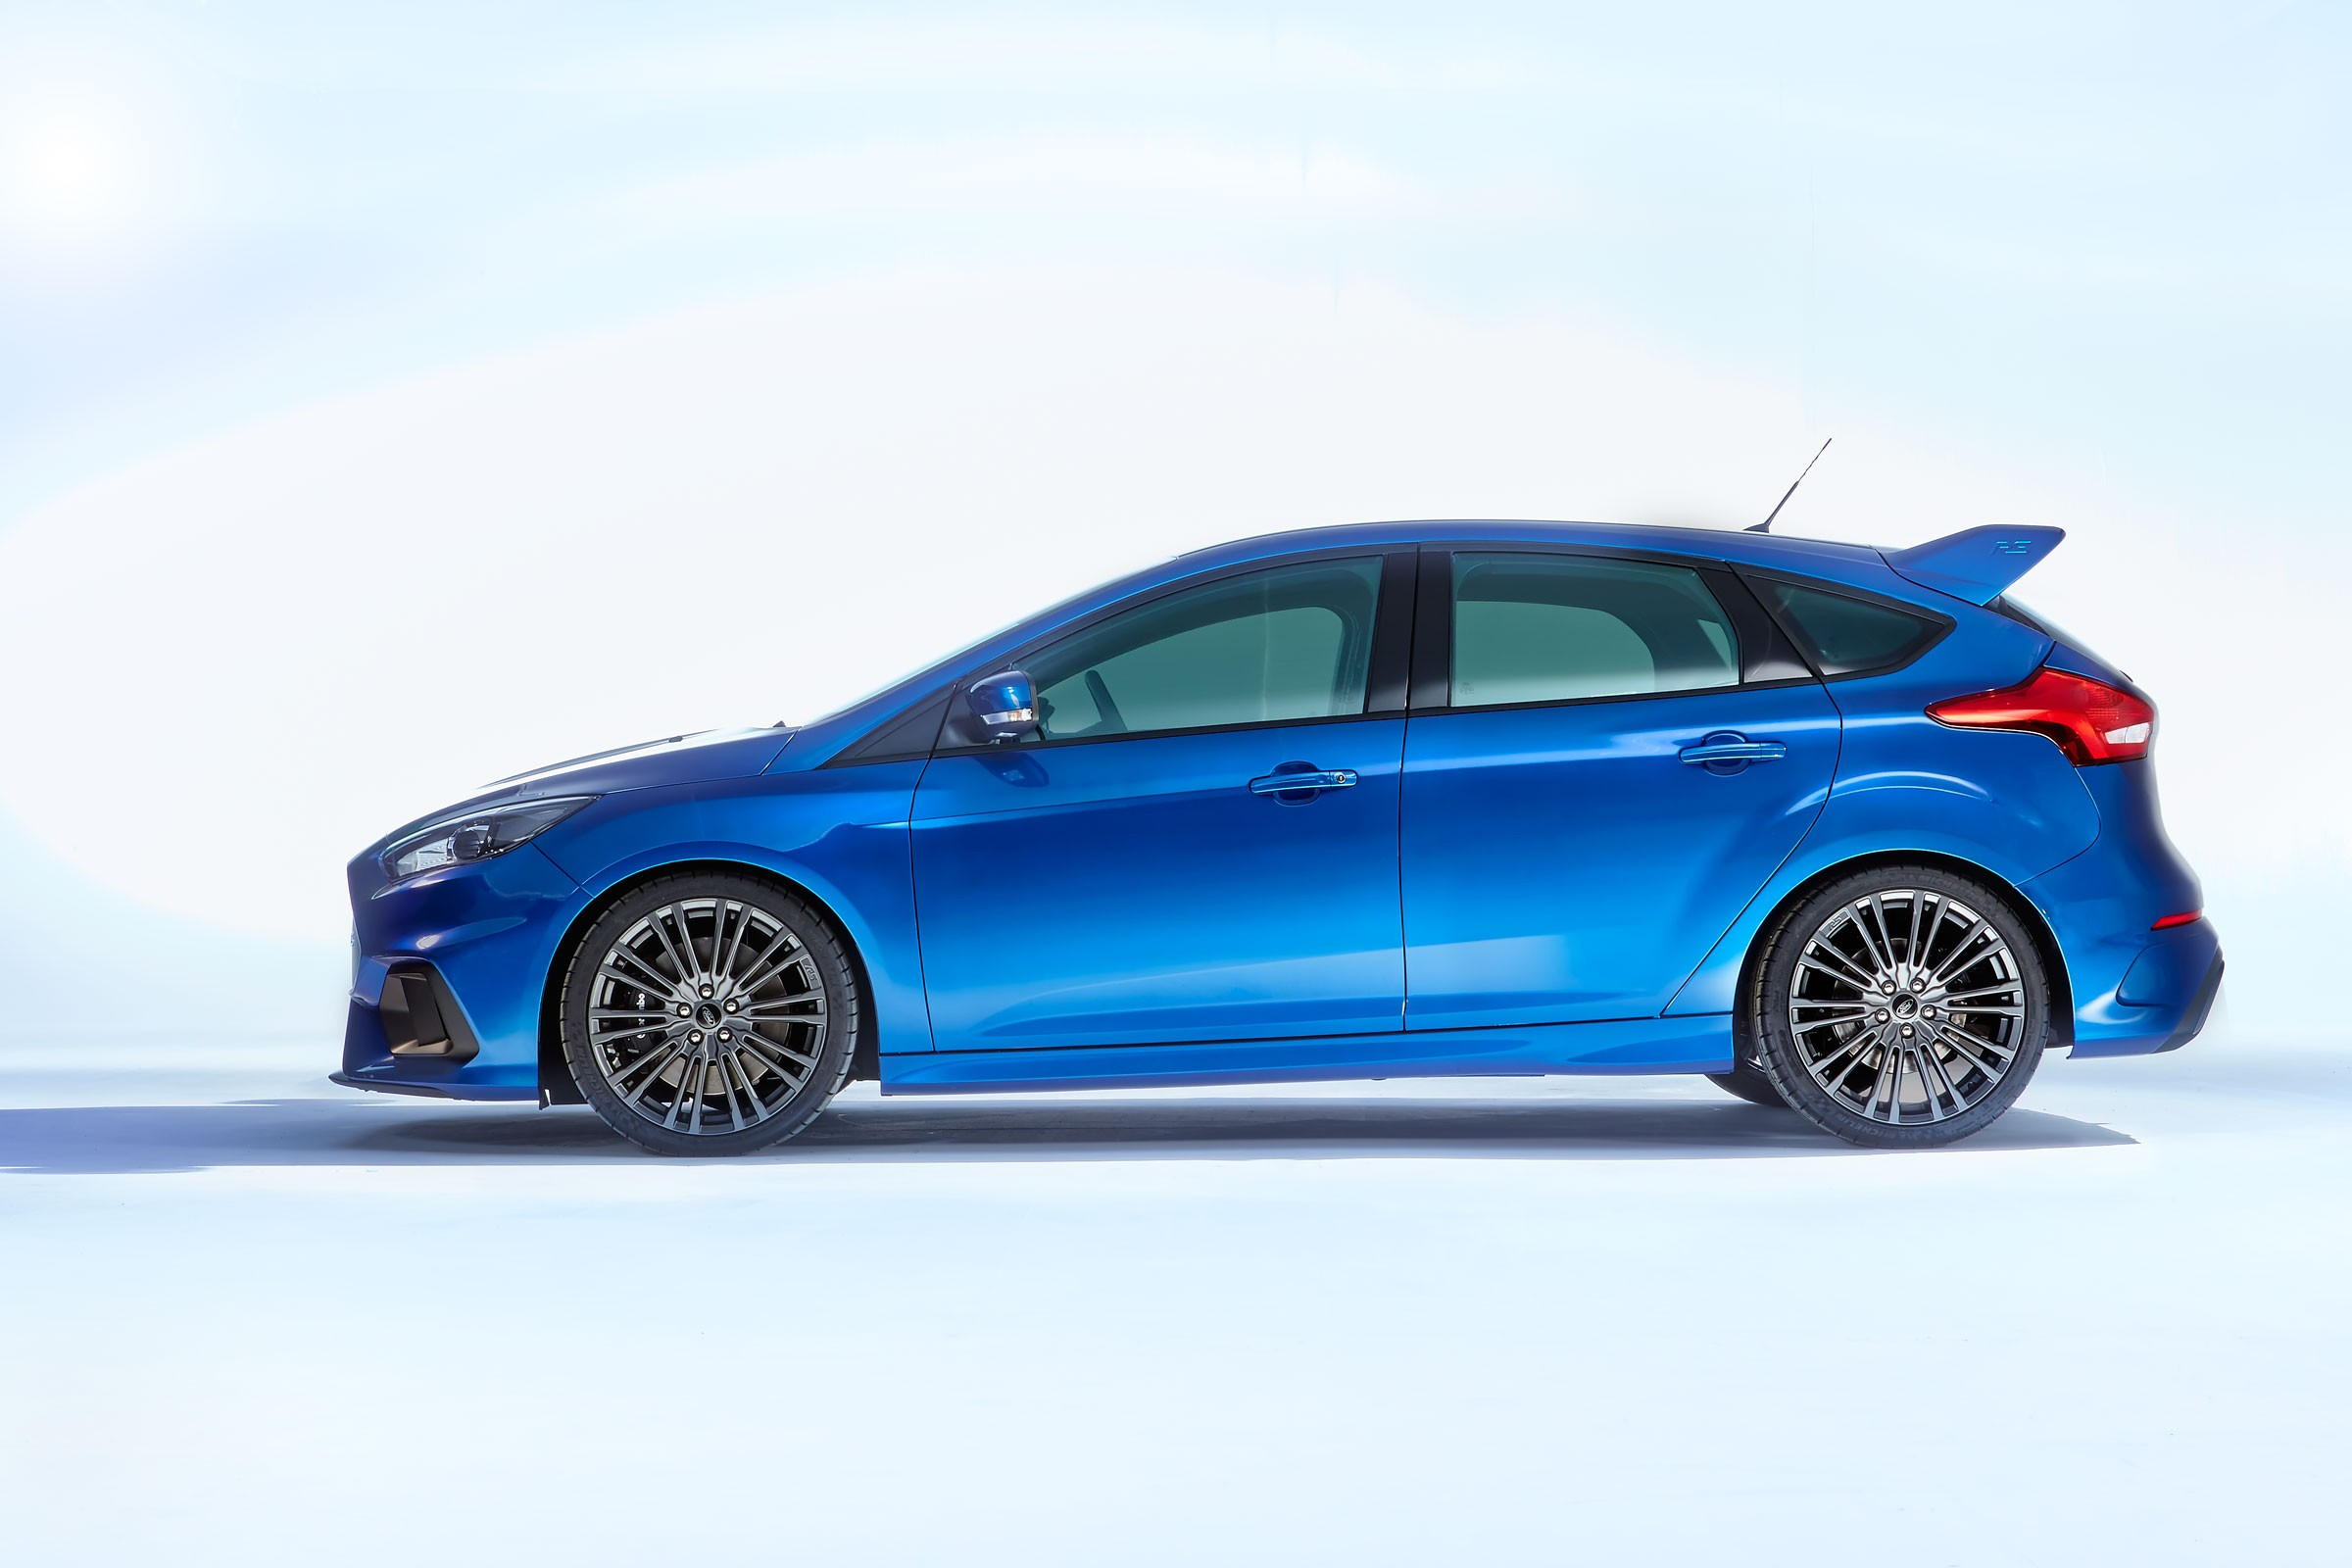 2016 ford focus rs debuts in cologne here are the official details autoevolution. Black Bedroom Furniture Sets. Home Design Ideas